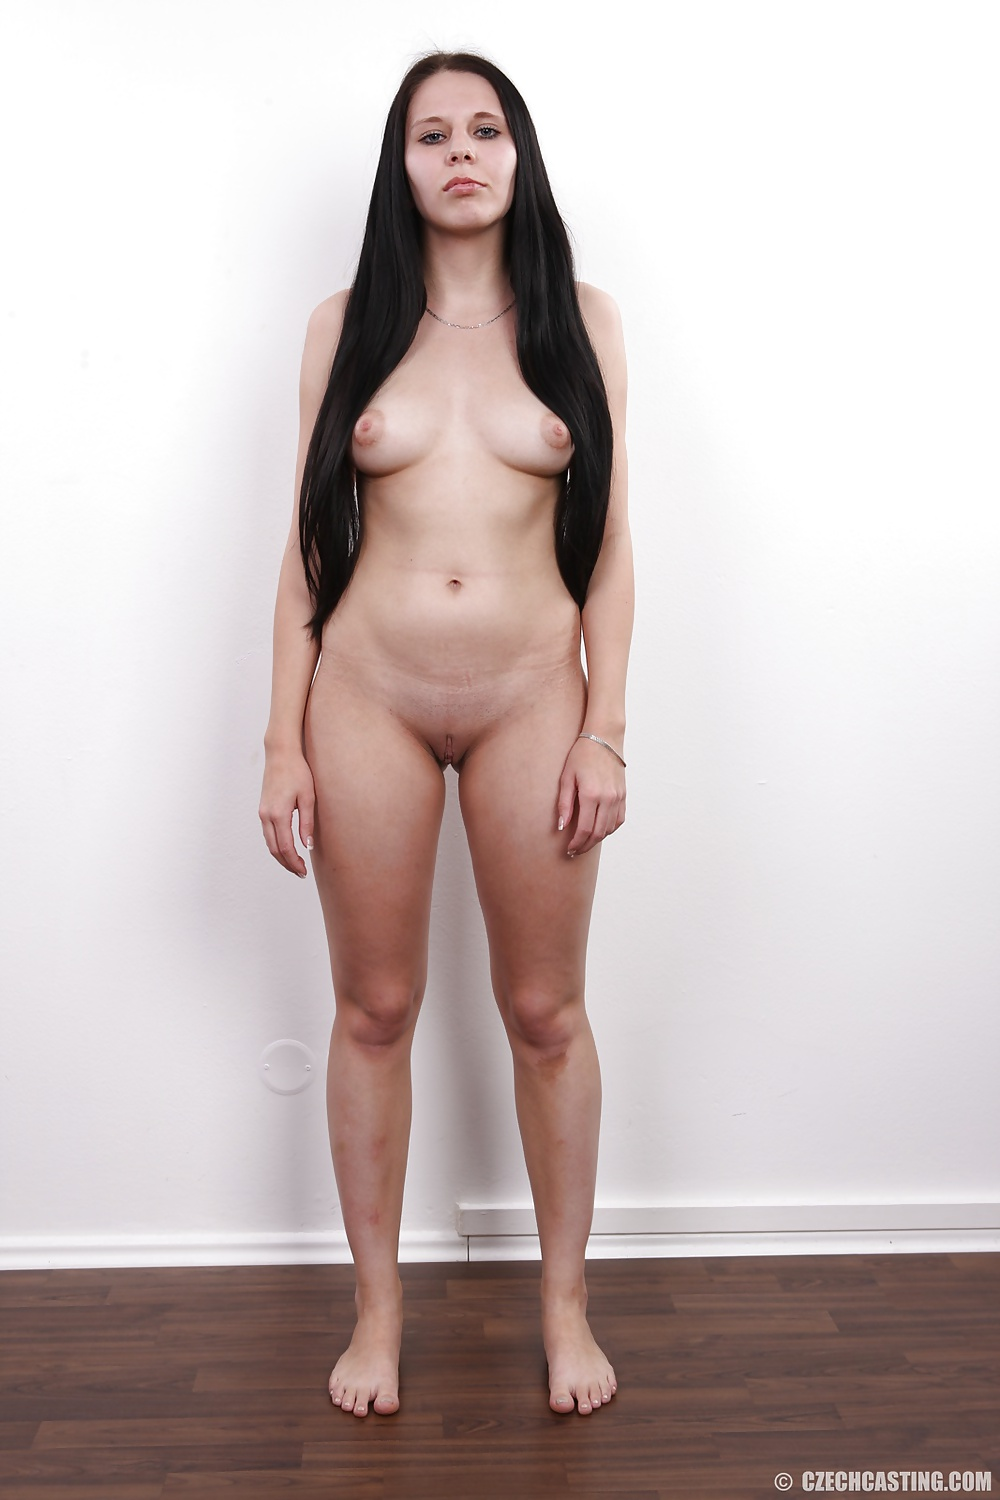 Was Teen nude model audition right! Idea